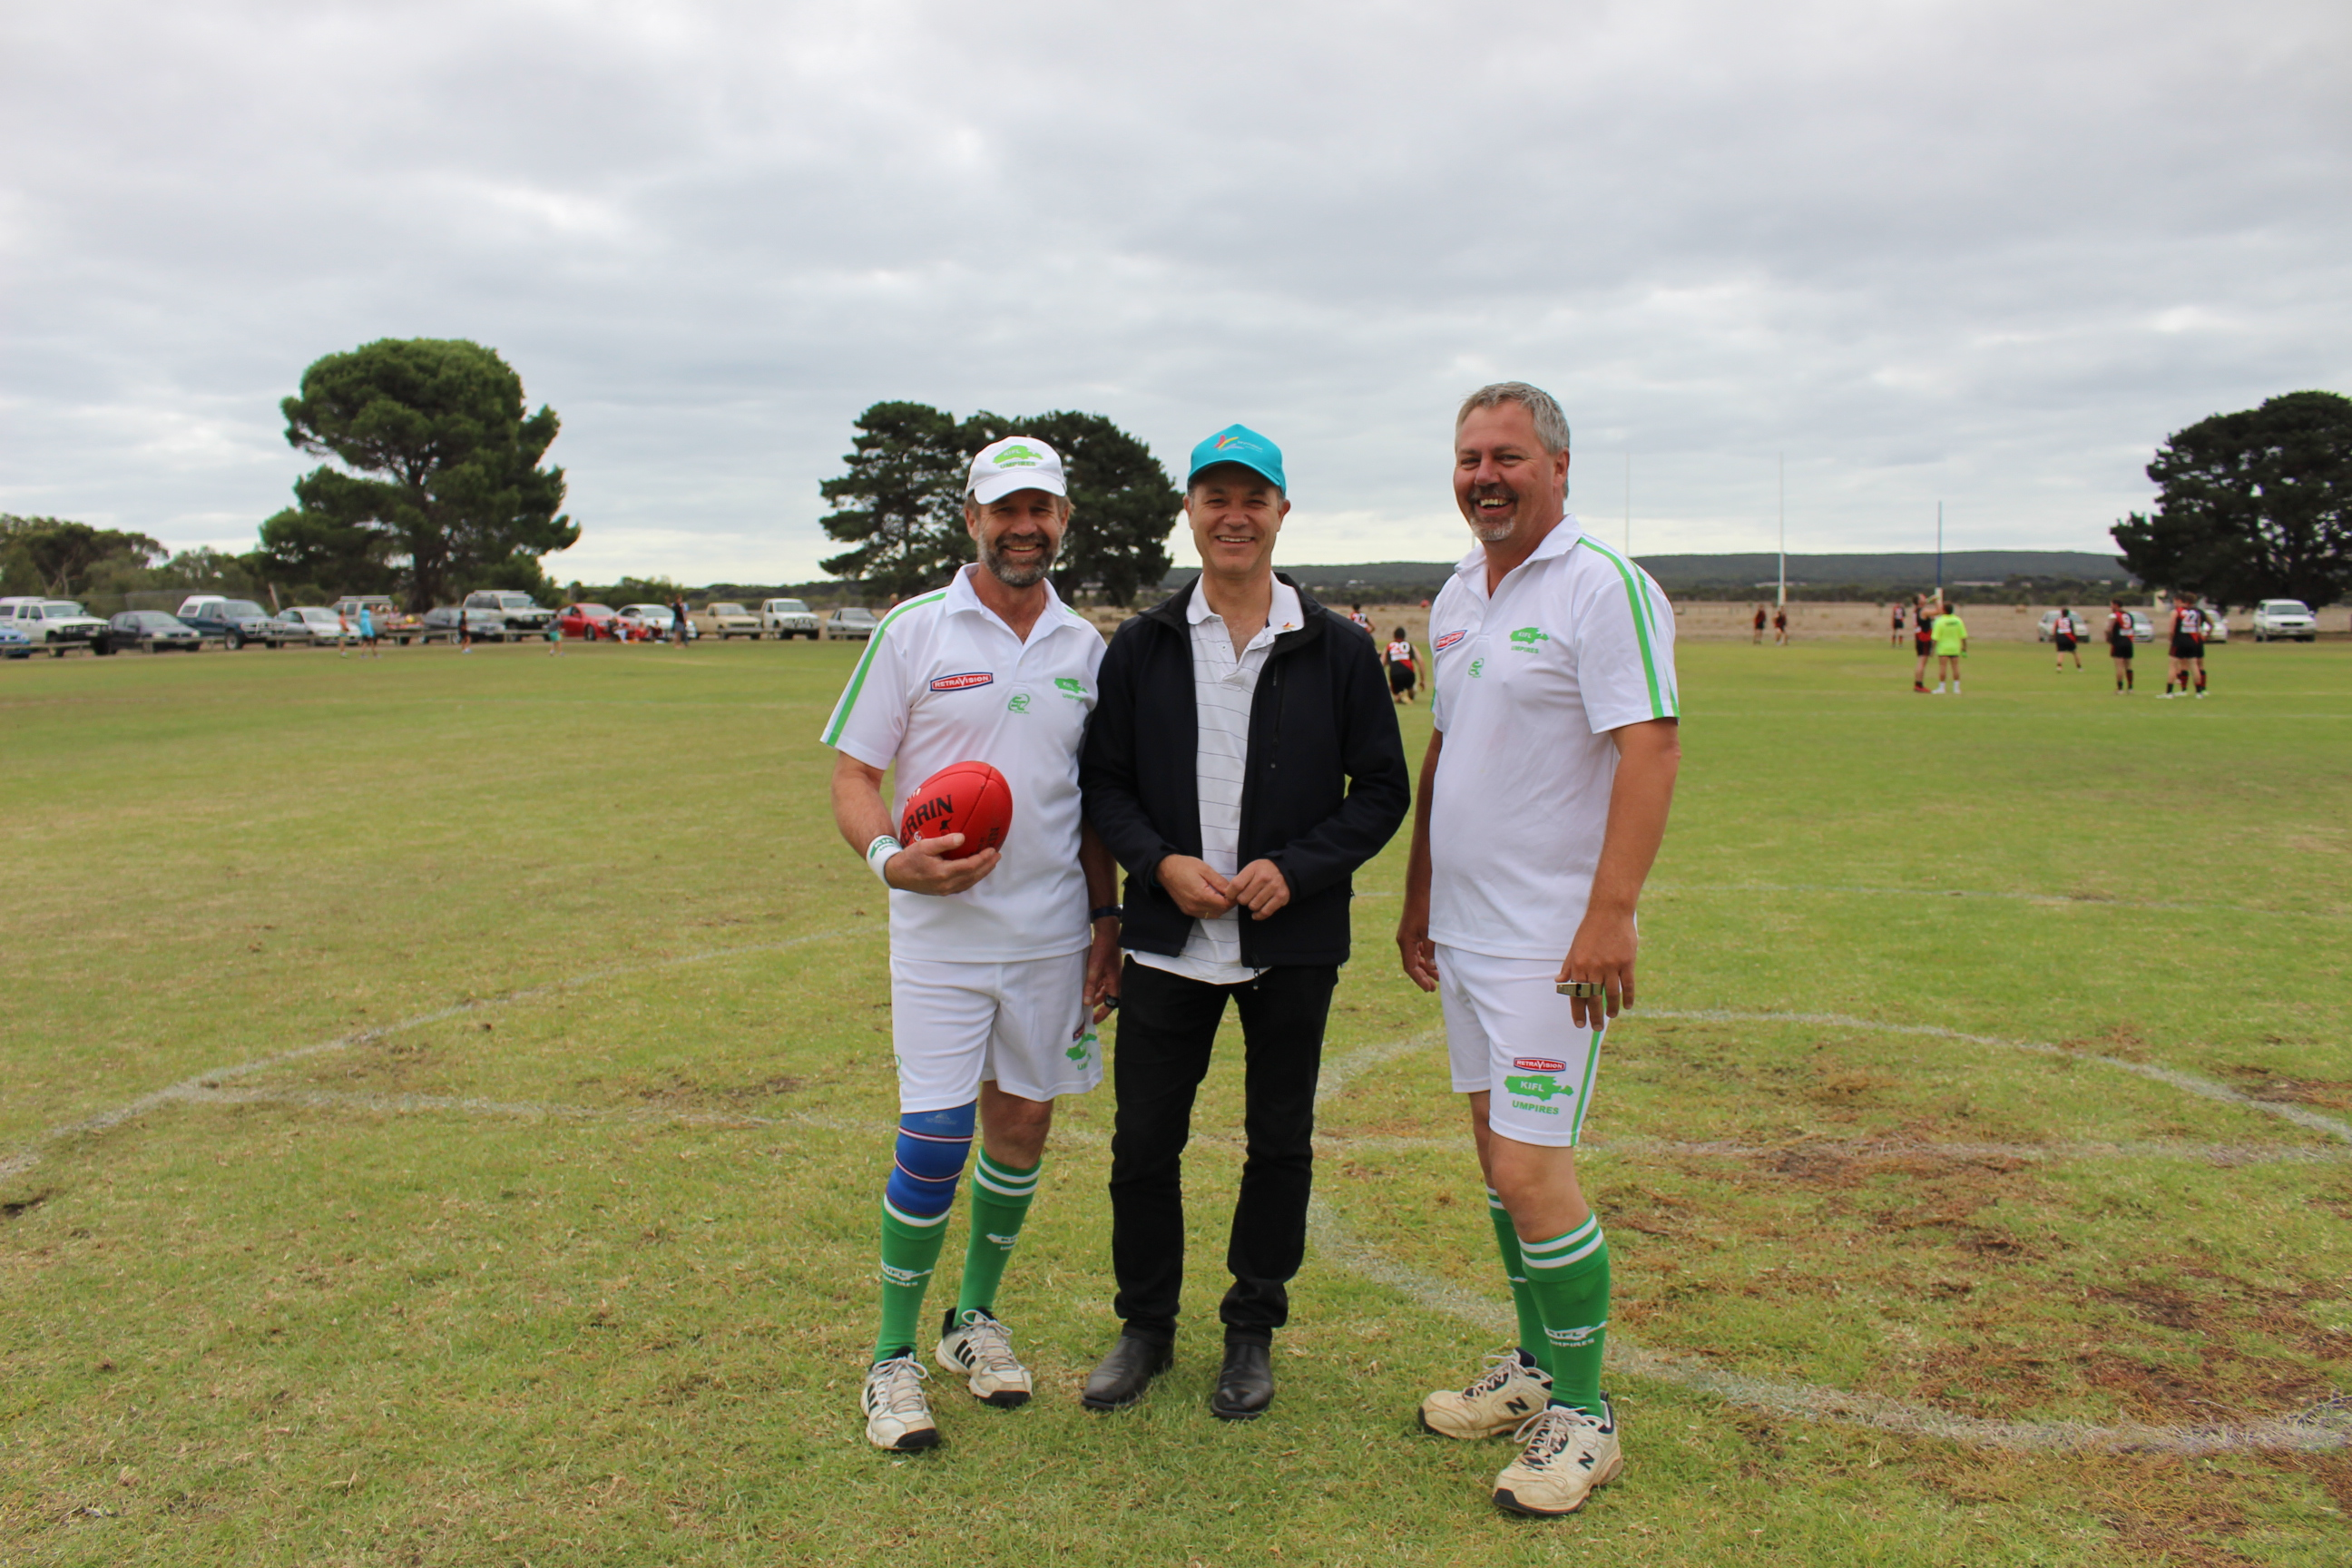 Beyond Blue Board Director Associate Professor Michael Baigent with KIFL umpires.